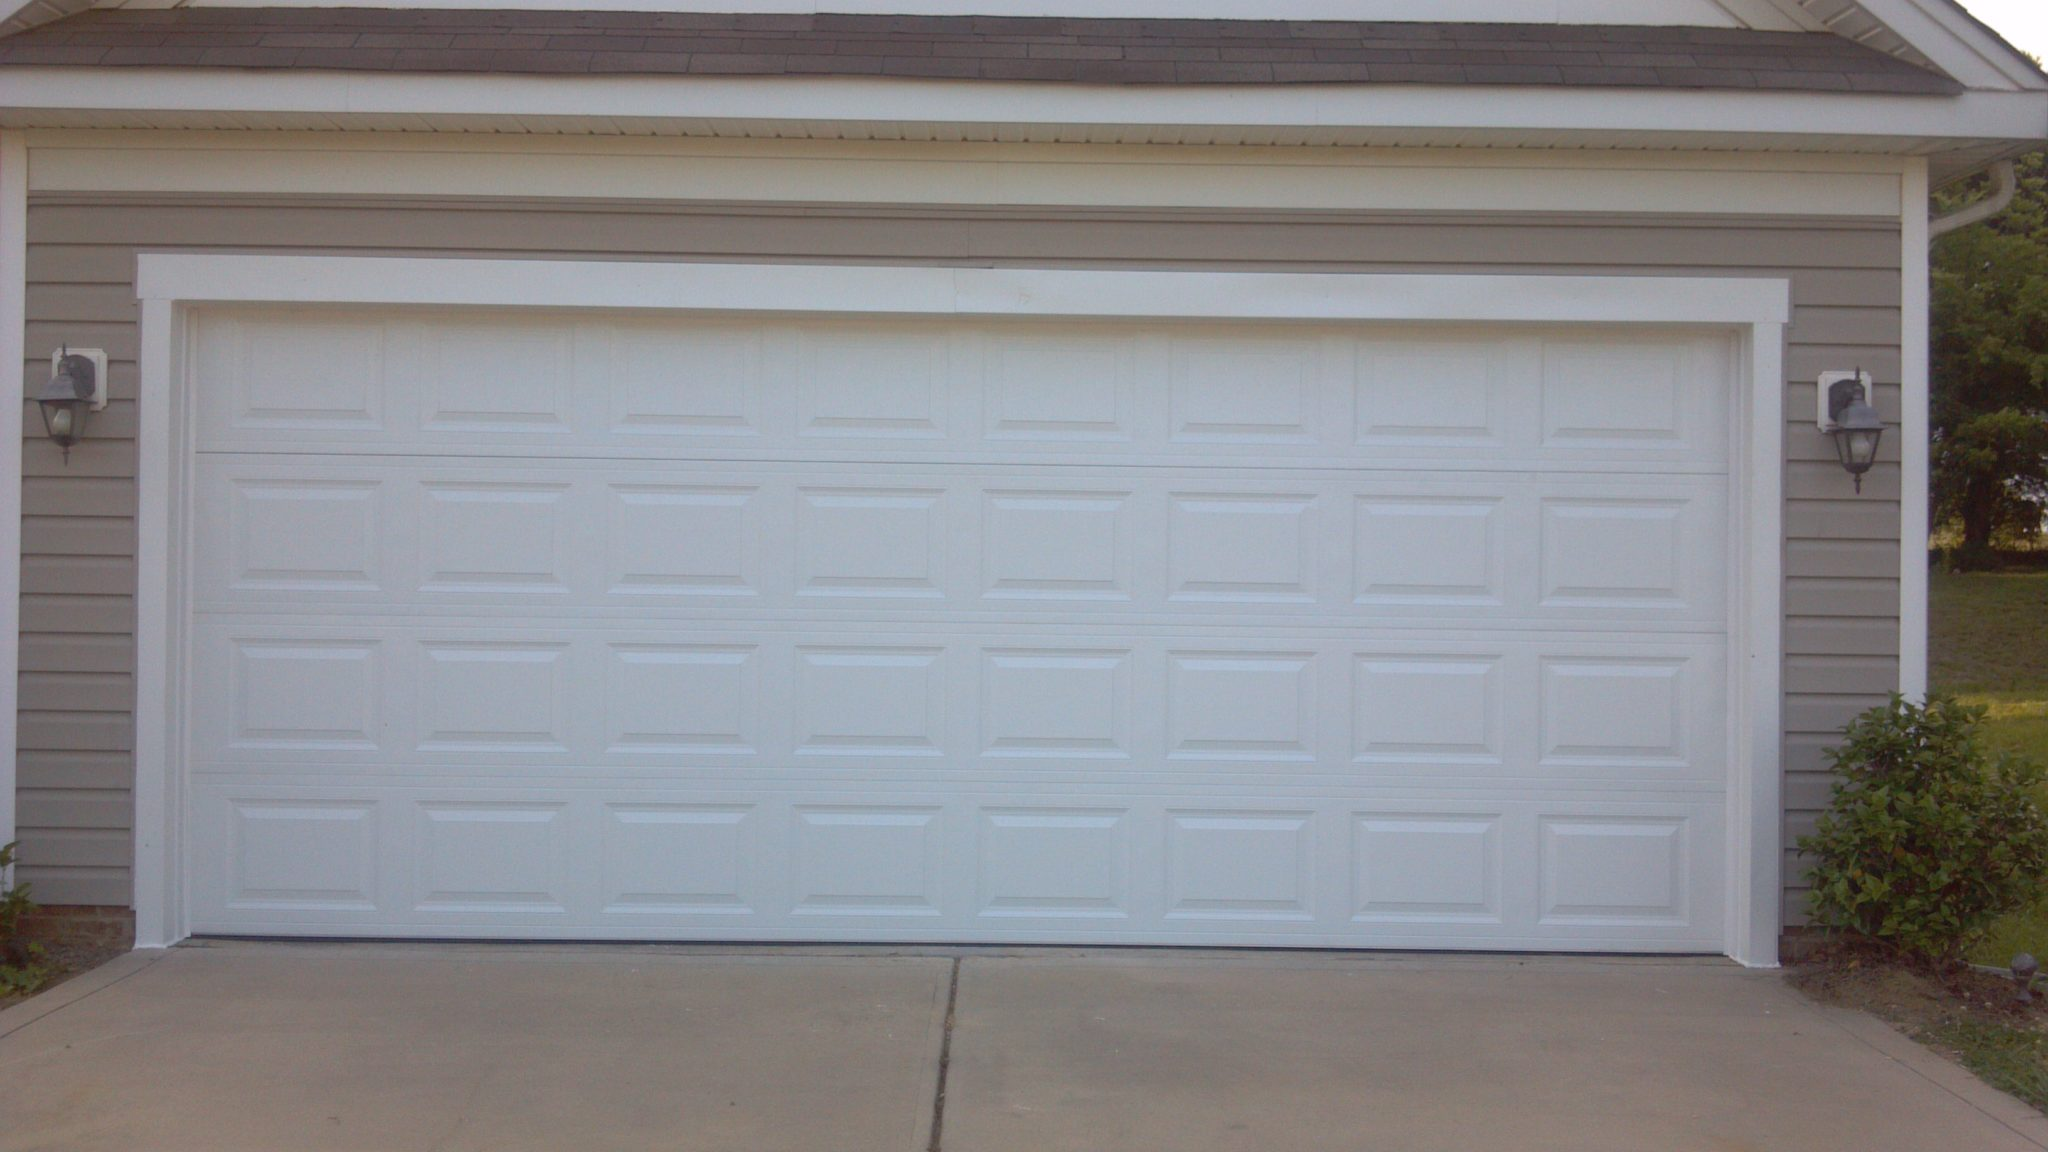 1836 #6D5E4E  Garage Doors Made Into One Garage Door After A Plus Garage Doors picture/photo Garages Doors 36393264